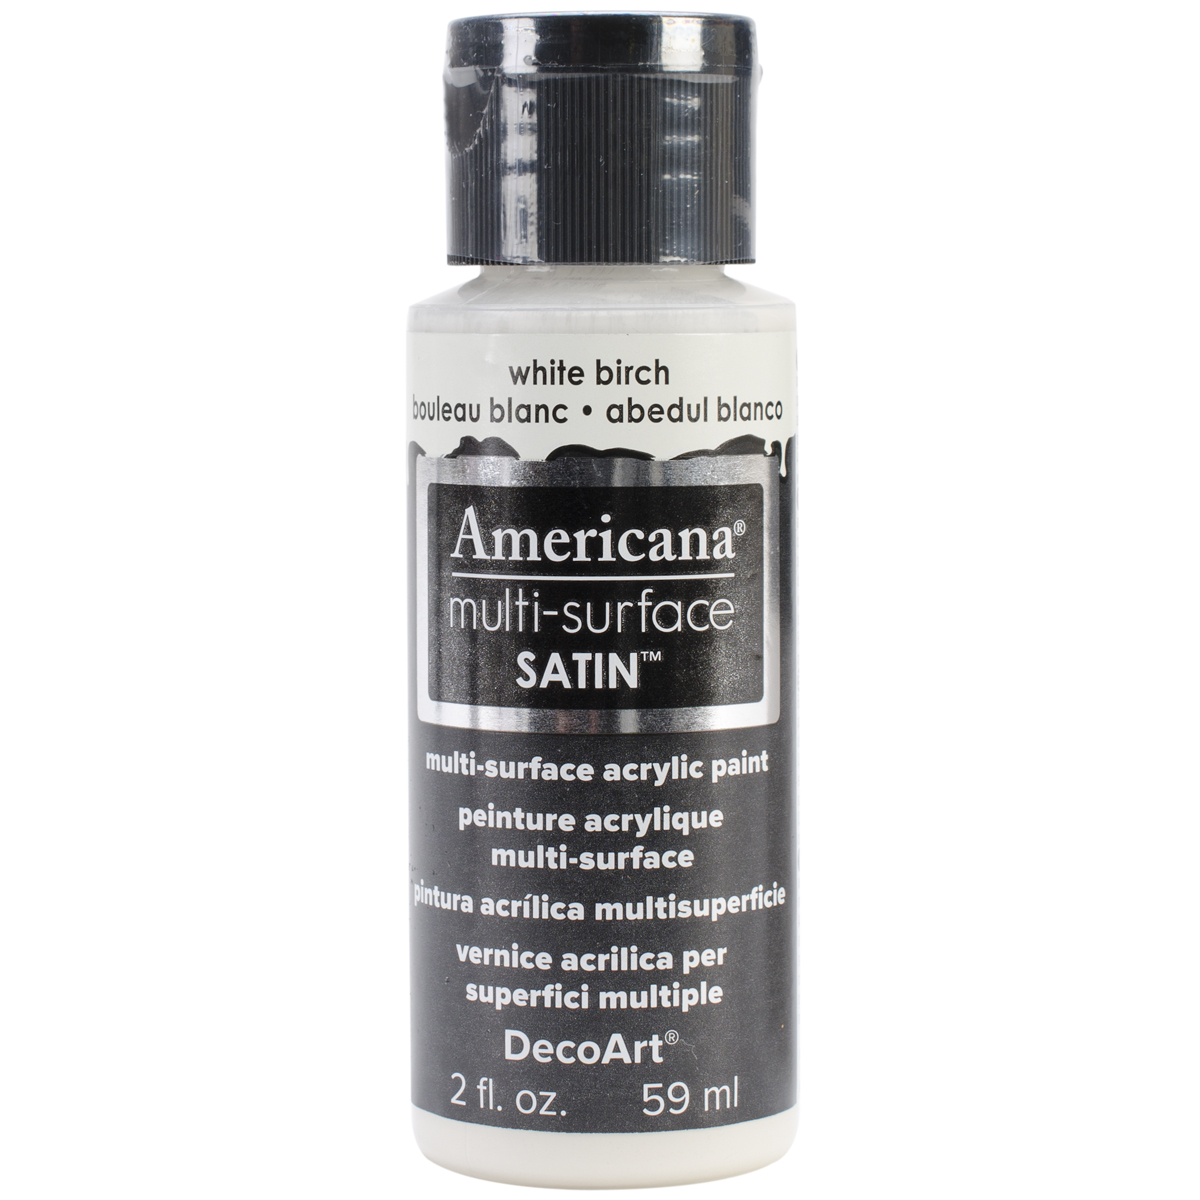 Americana Multi-Surface Satin Acrylic Paint 2oz-White Birch